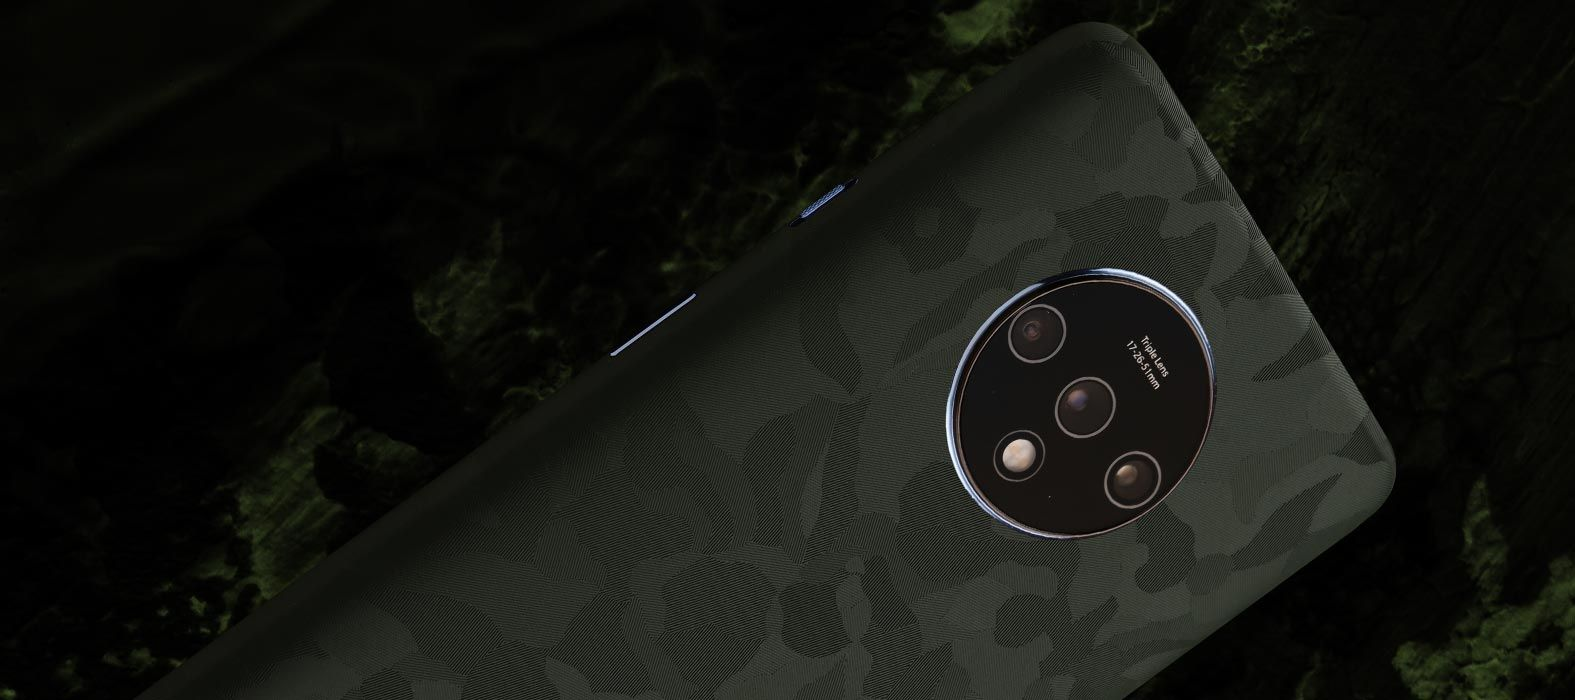 Oneplus 7T Green camoflaunt Skins